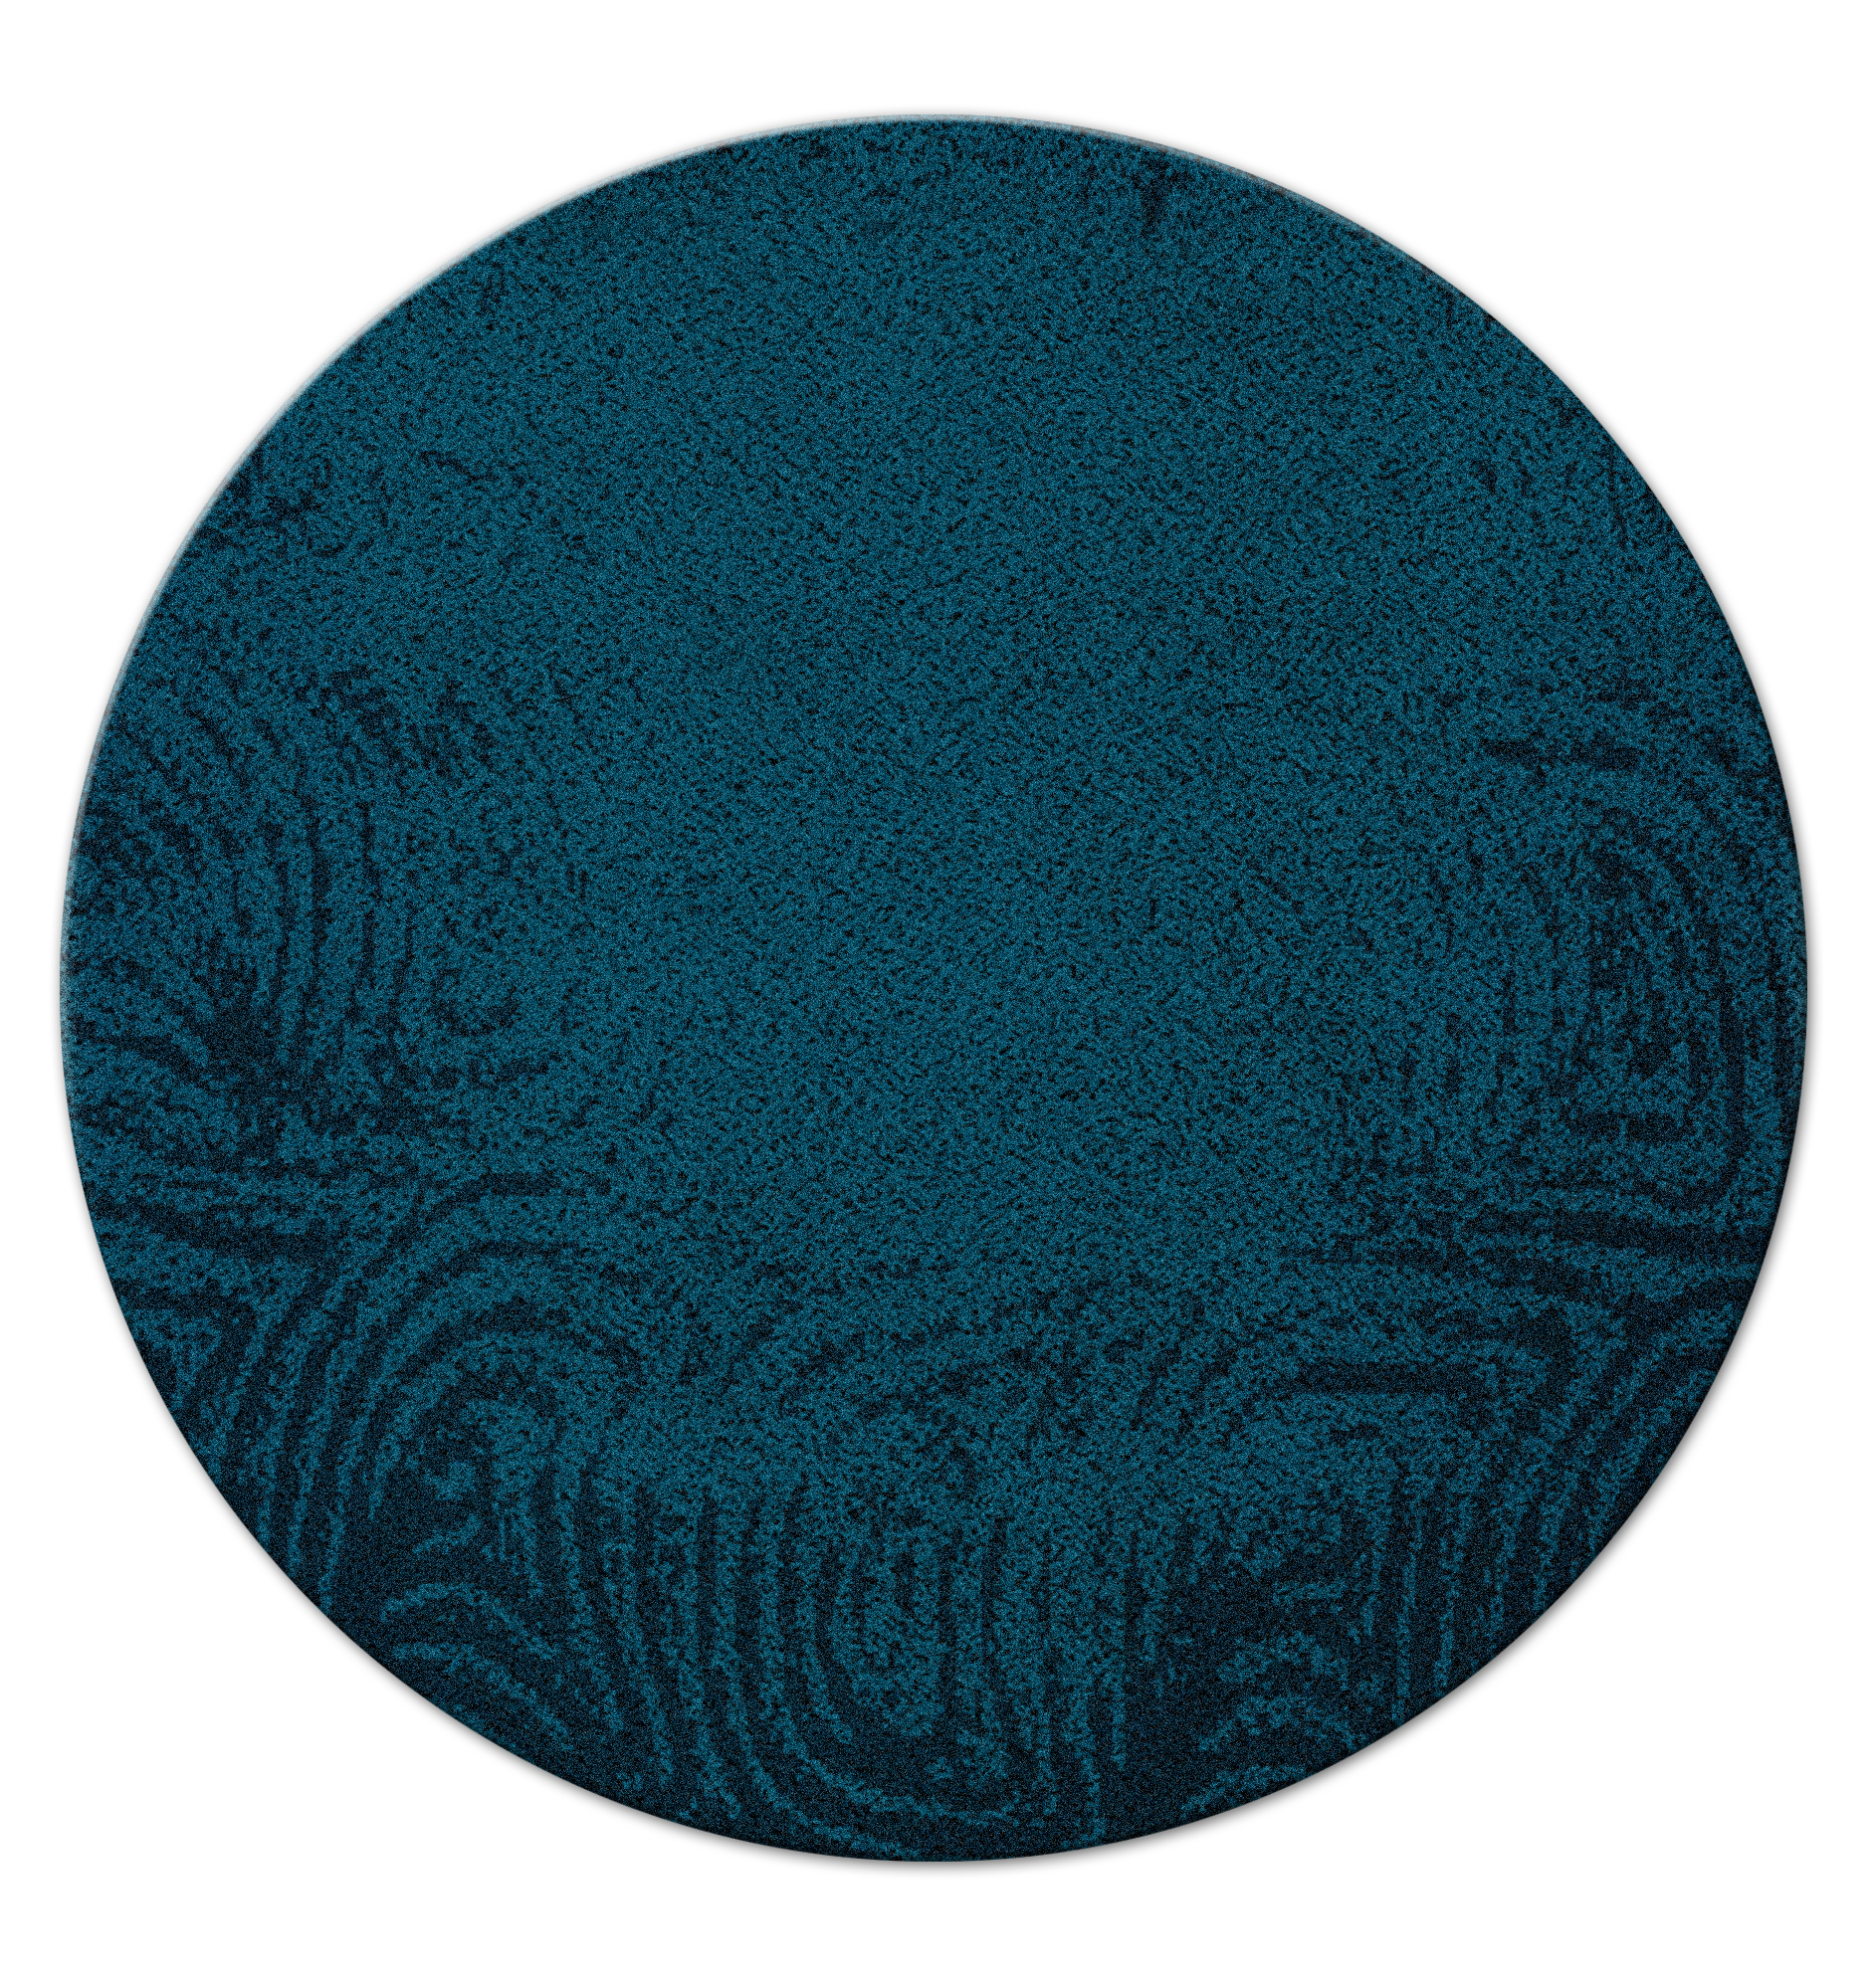 Round Rugs For A Modern Home Decor round rugs Round Rugs For A Modern Home Decor surma 2 HR